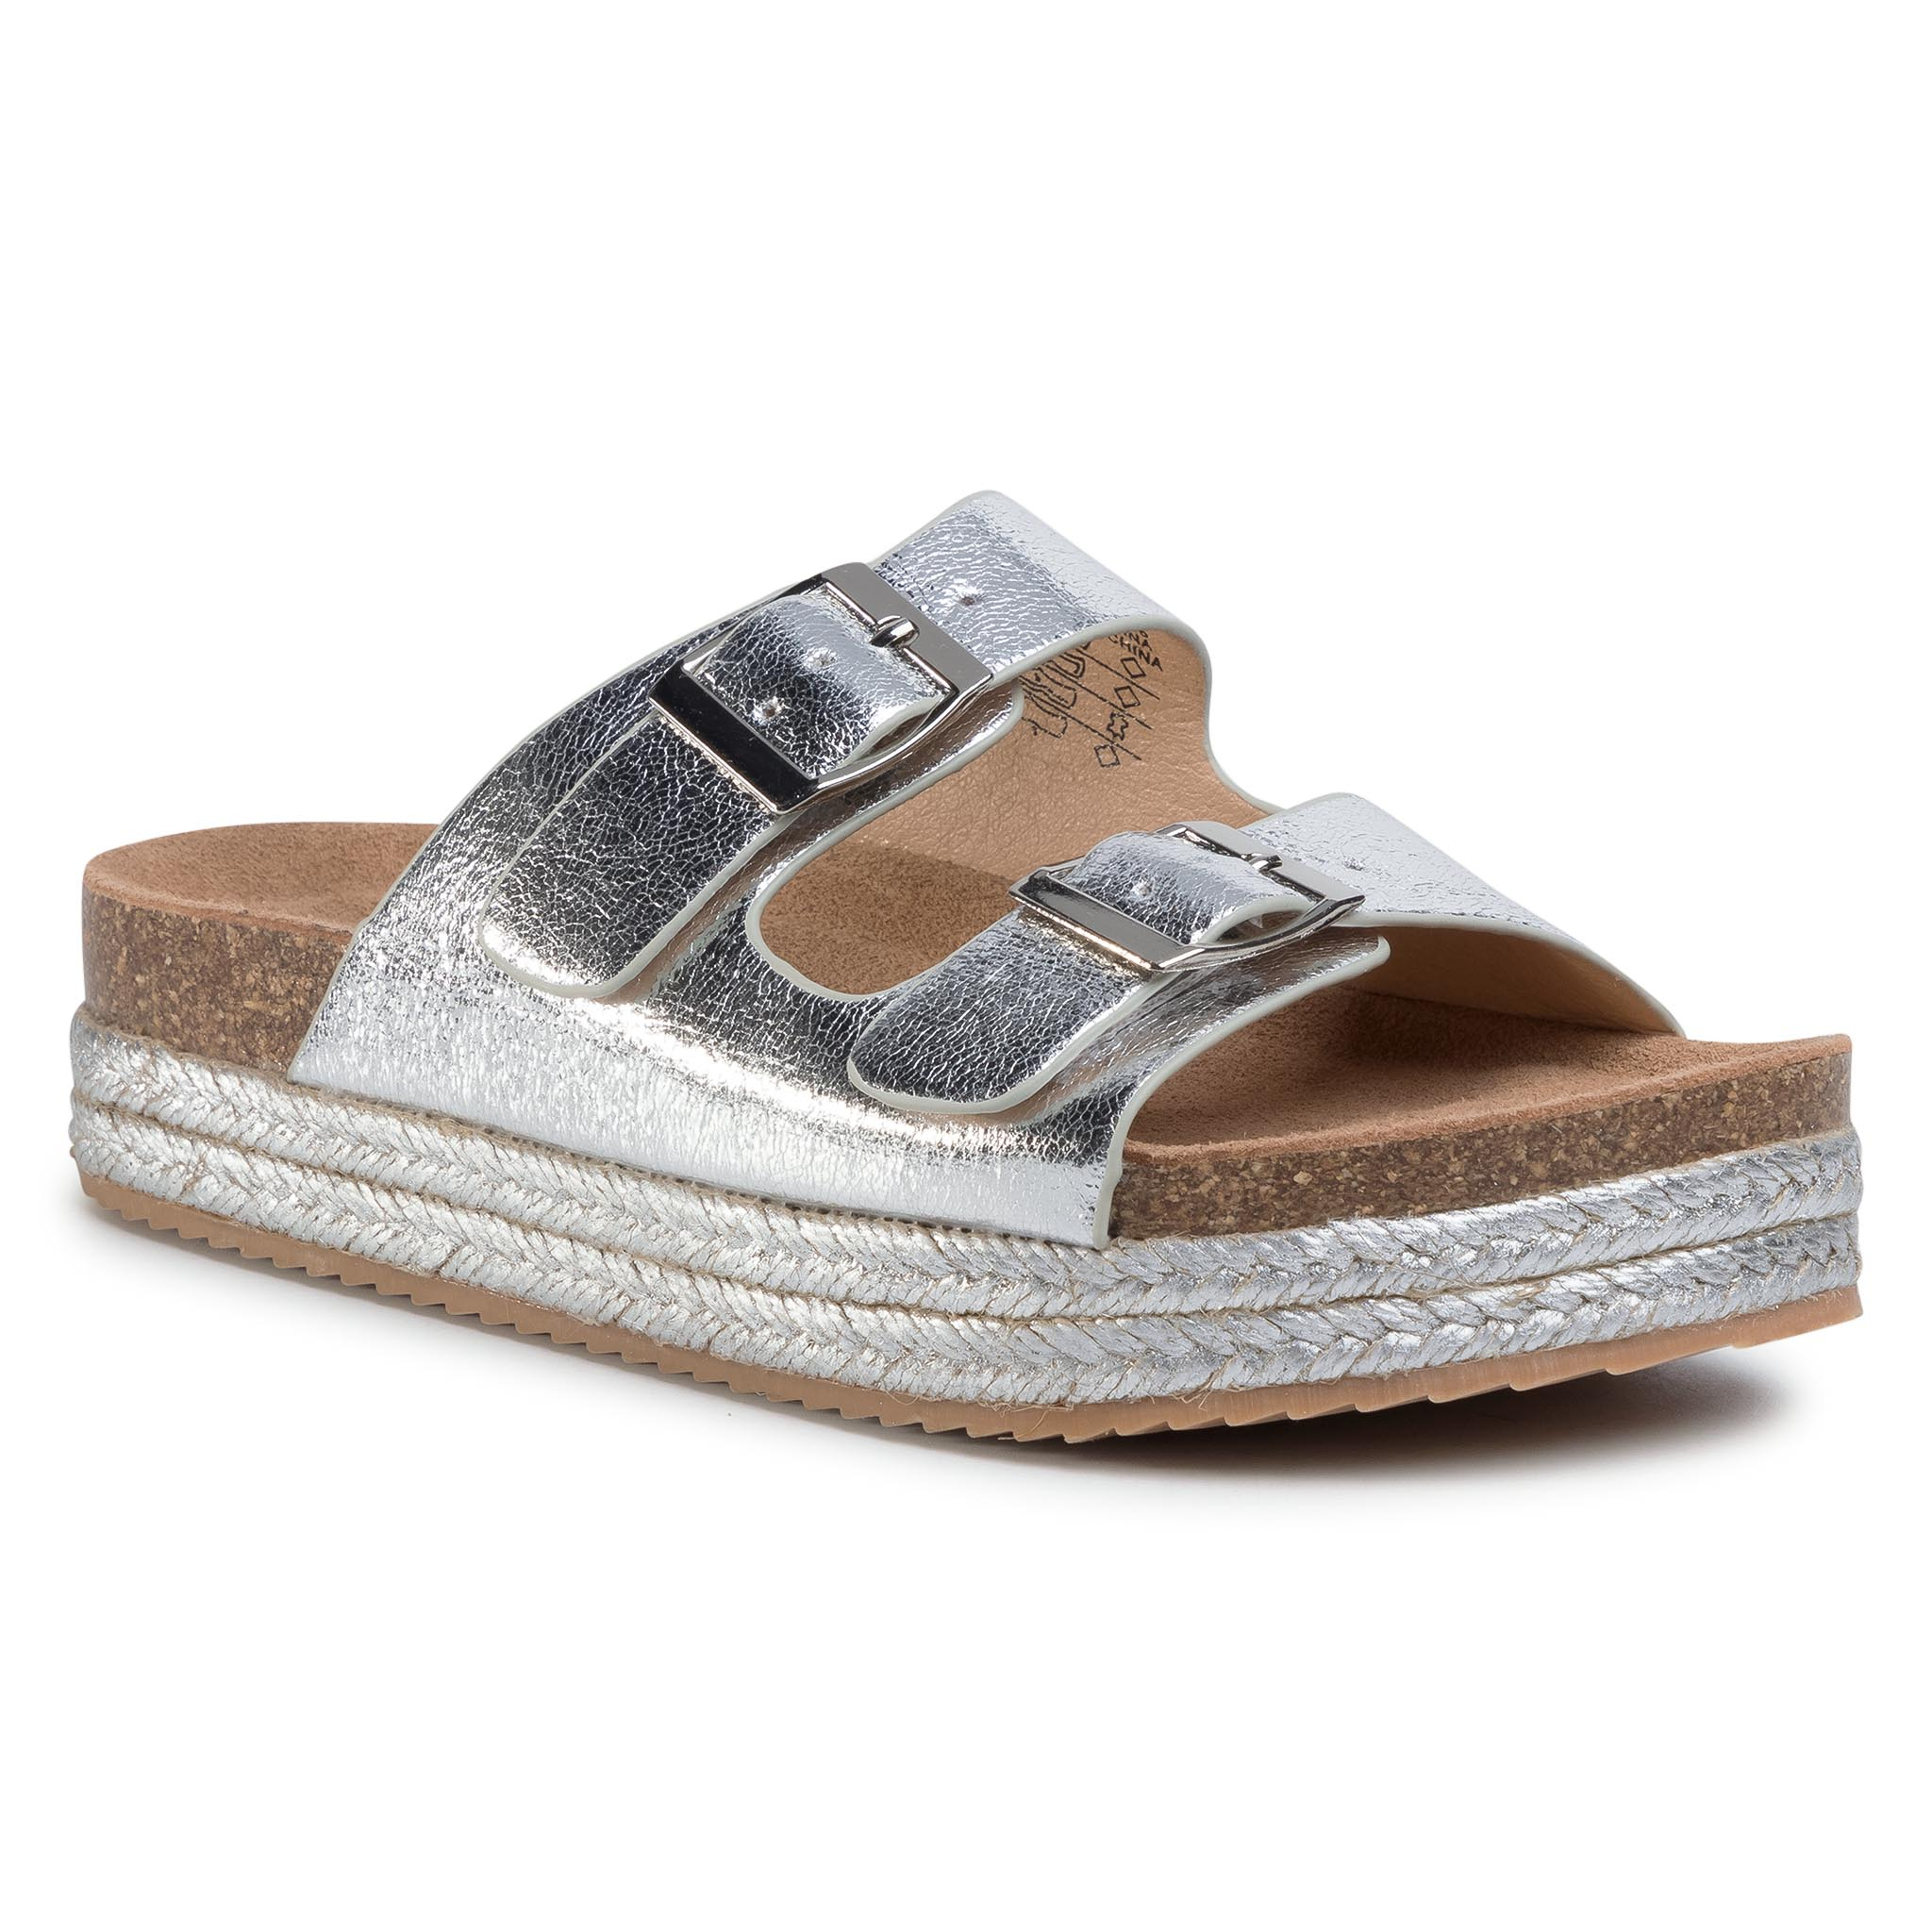 Espadrile Refresh - 69926 Silver imagine epantofi.ro 2021